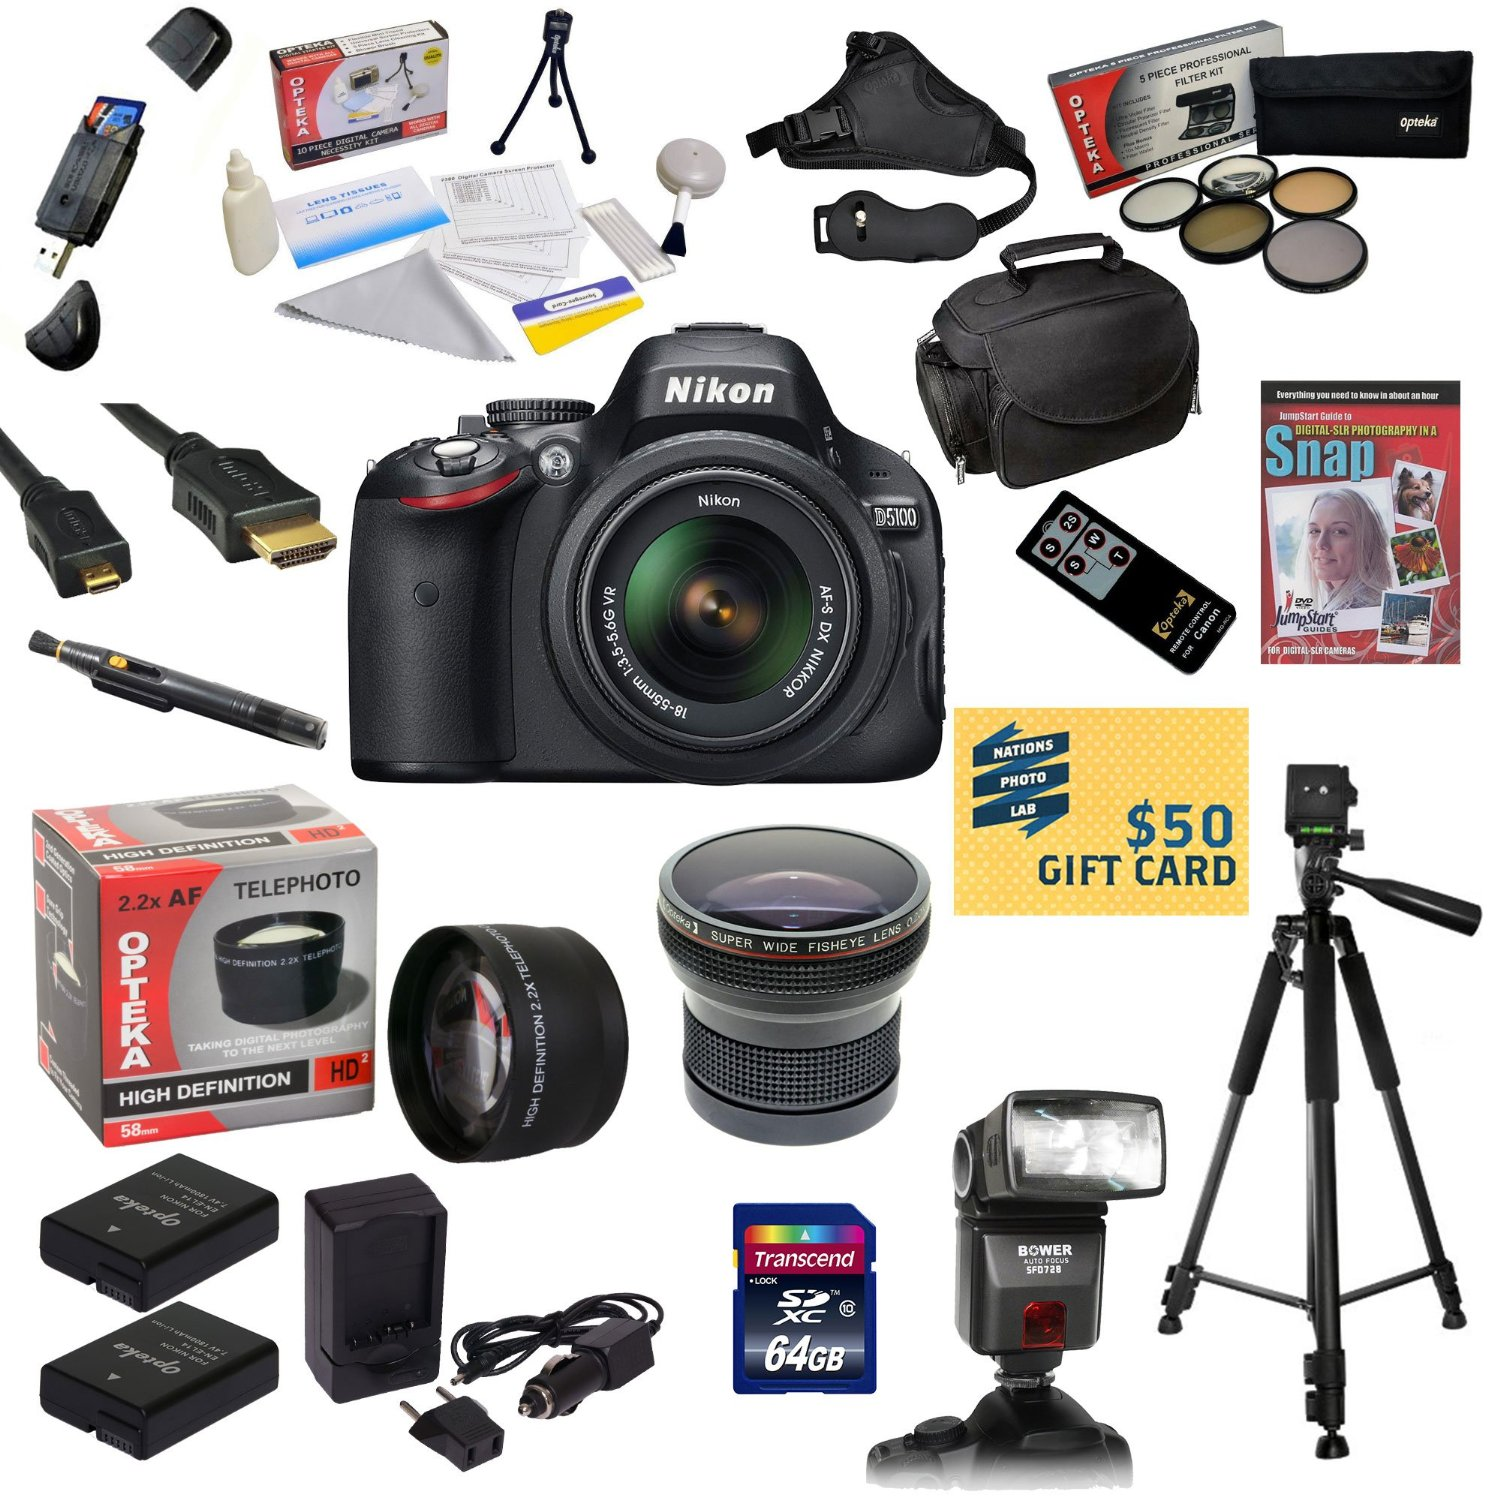 Nikon D5100 Digital SLR Camera with 18-55mm NIKKOR VR Lens With 64GB SDXC Card, Reader, 2x Batteries, Dual Charger, 0.20X + 2.2x Lens, 5 PC Filter, Flash, Case, Remote, Tripod, DVD, $50 Gift Card!